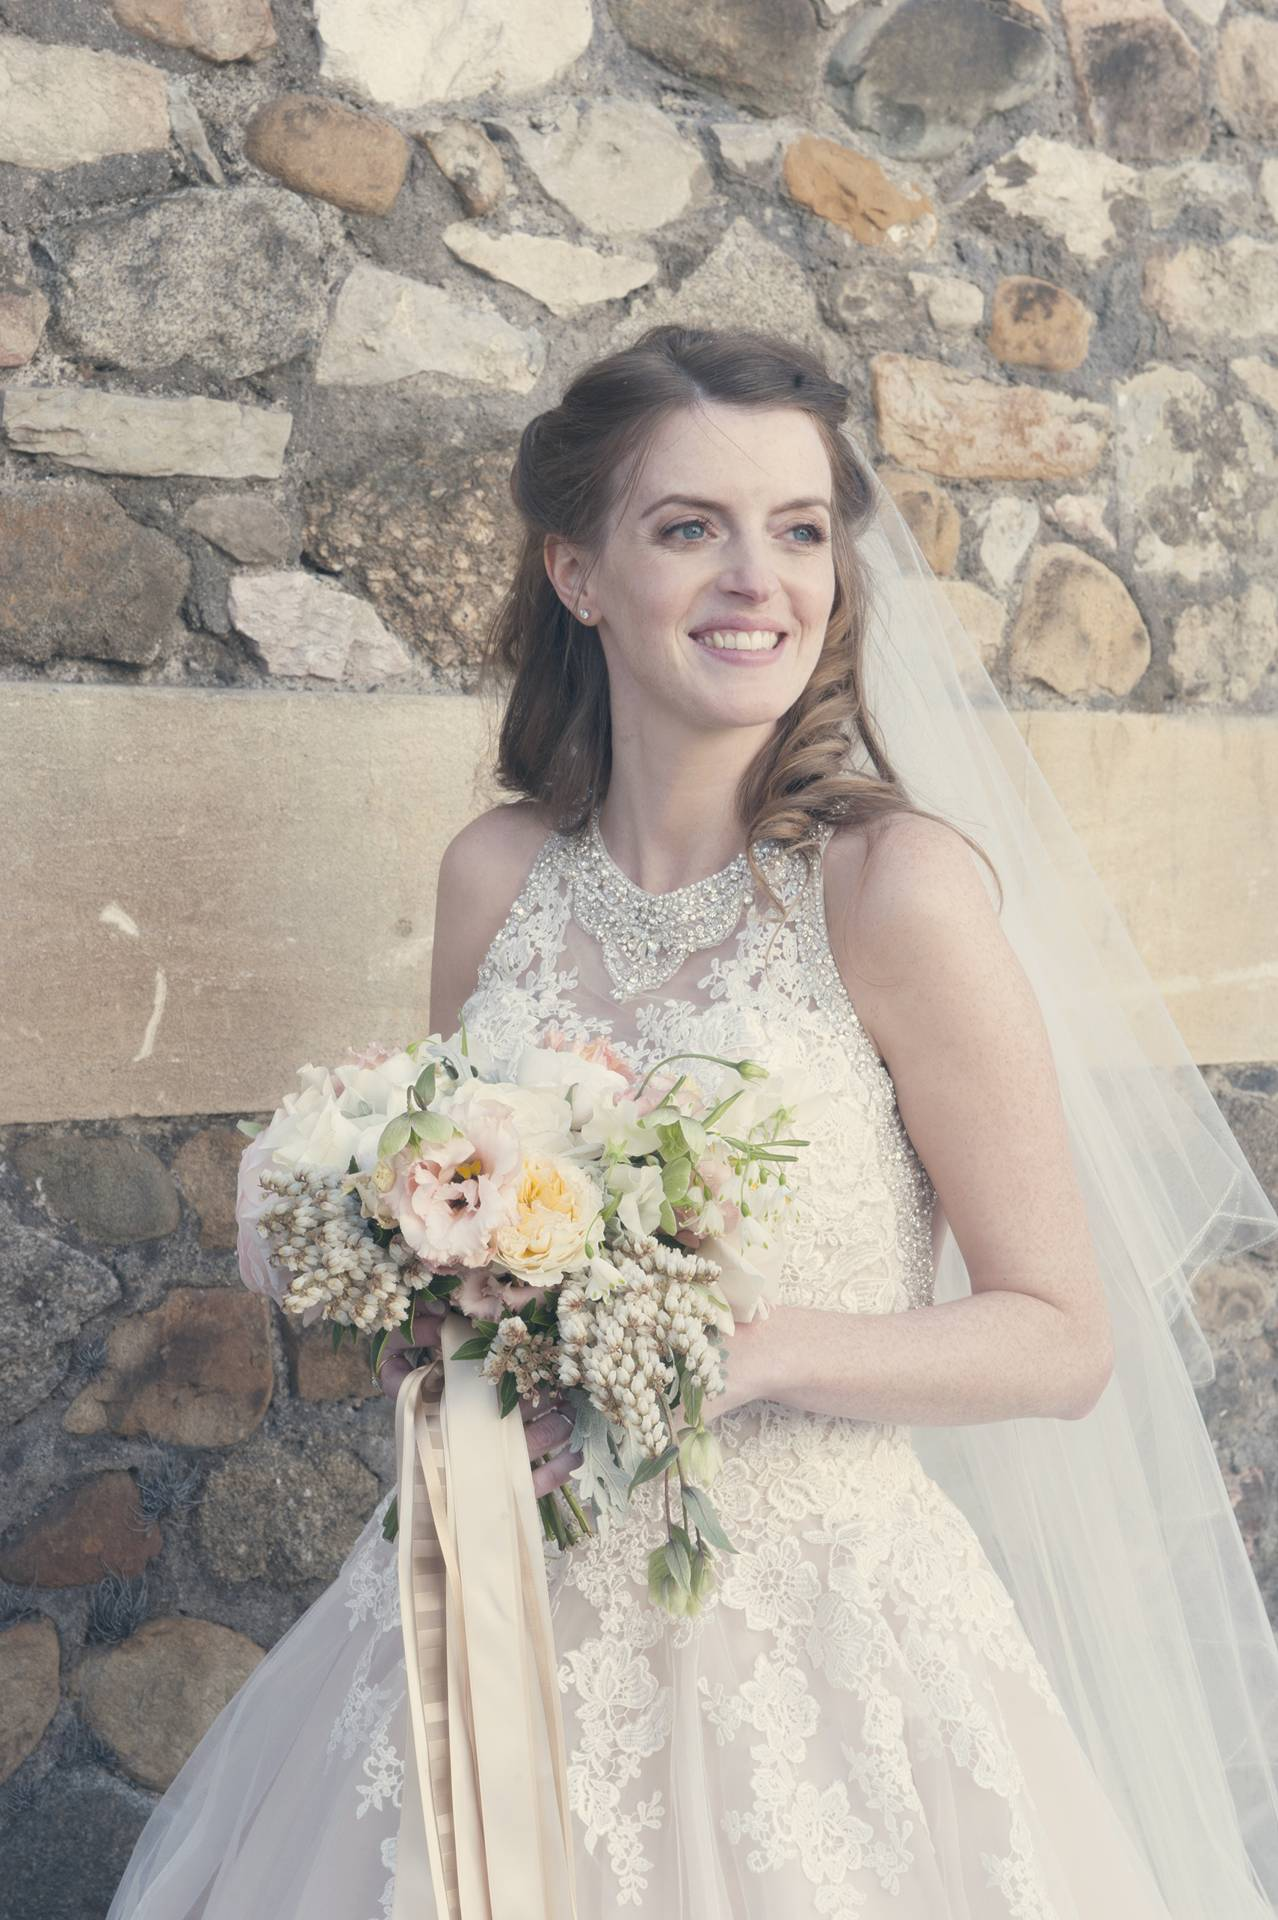 Sarah the bride with beautiful hand tie